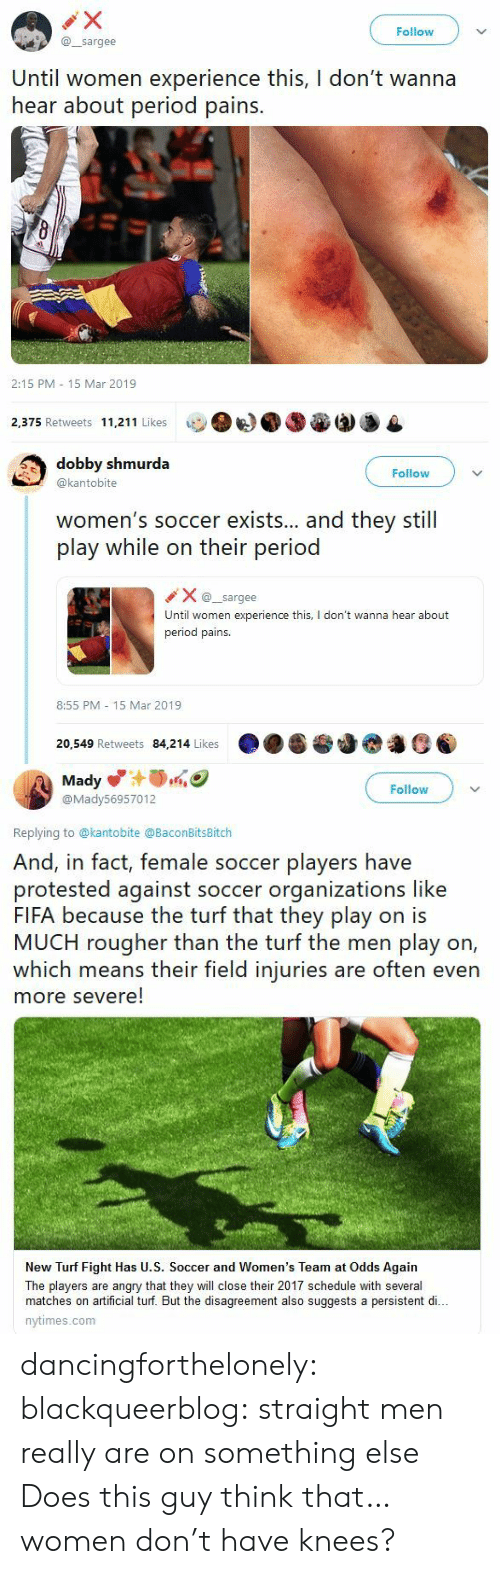 Nytimes: Follow  @sargee  Until women experience this, I don't wanna  hear about period pains.  2:15 PM 15 Mar 2019  2,375 Retweets 11,211 Likes   dobby shmurda  @kantobite  Follow  women's soccer exists... and they still  play while on their period  Xsargee  Until women experience this, I don't wanna hear about  period pains.  8:55 PM 15 Mar 2019  20,549 Retweets 84,214 Likes   Mady  @Mady56957012  Follow  Replying to @kantobite @BaconBitsBitch  And, in fact, female soccer players have  protested against soccer organizations like  FIFA because the turf that they play on is  MUCH rougher than the turf the men play on,  which means their field injuries are often even  more severe!  New Turf Fight Has U.S. Soccer and Women's Team at Odds Again  The players are angry that they will close their 2017 schedule with several  matches on artificial turf. But the disagreement also suggests a persistent di..  nytimes.com dancingforthelonely:  blackqueerblog:   straight men really are on something else    Does this guy think that…women don't have knees?